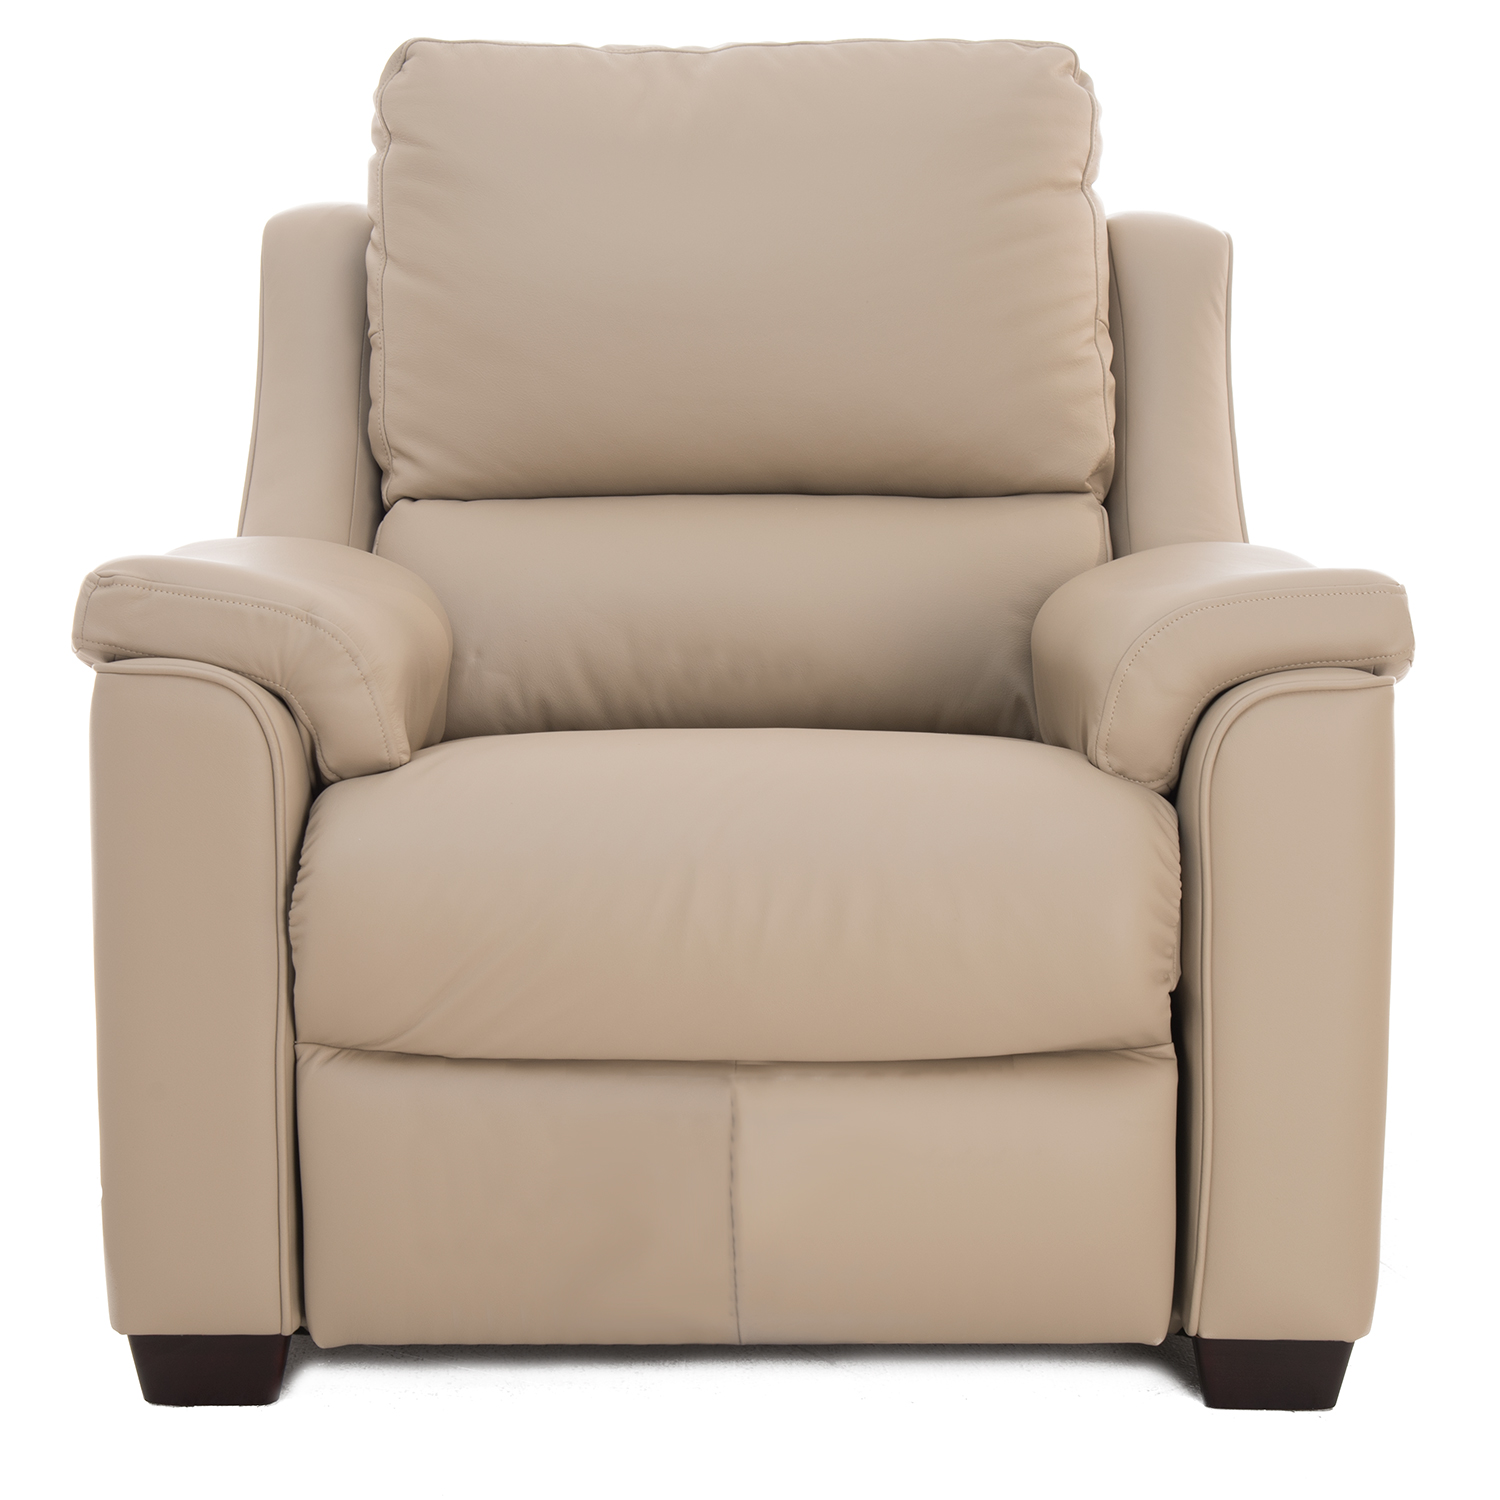 Image of Parker Knoll Albany Power Recliner Leather Armchair